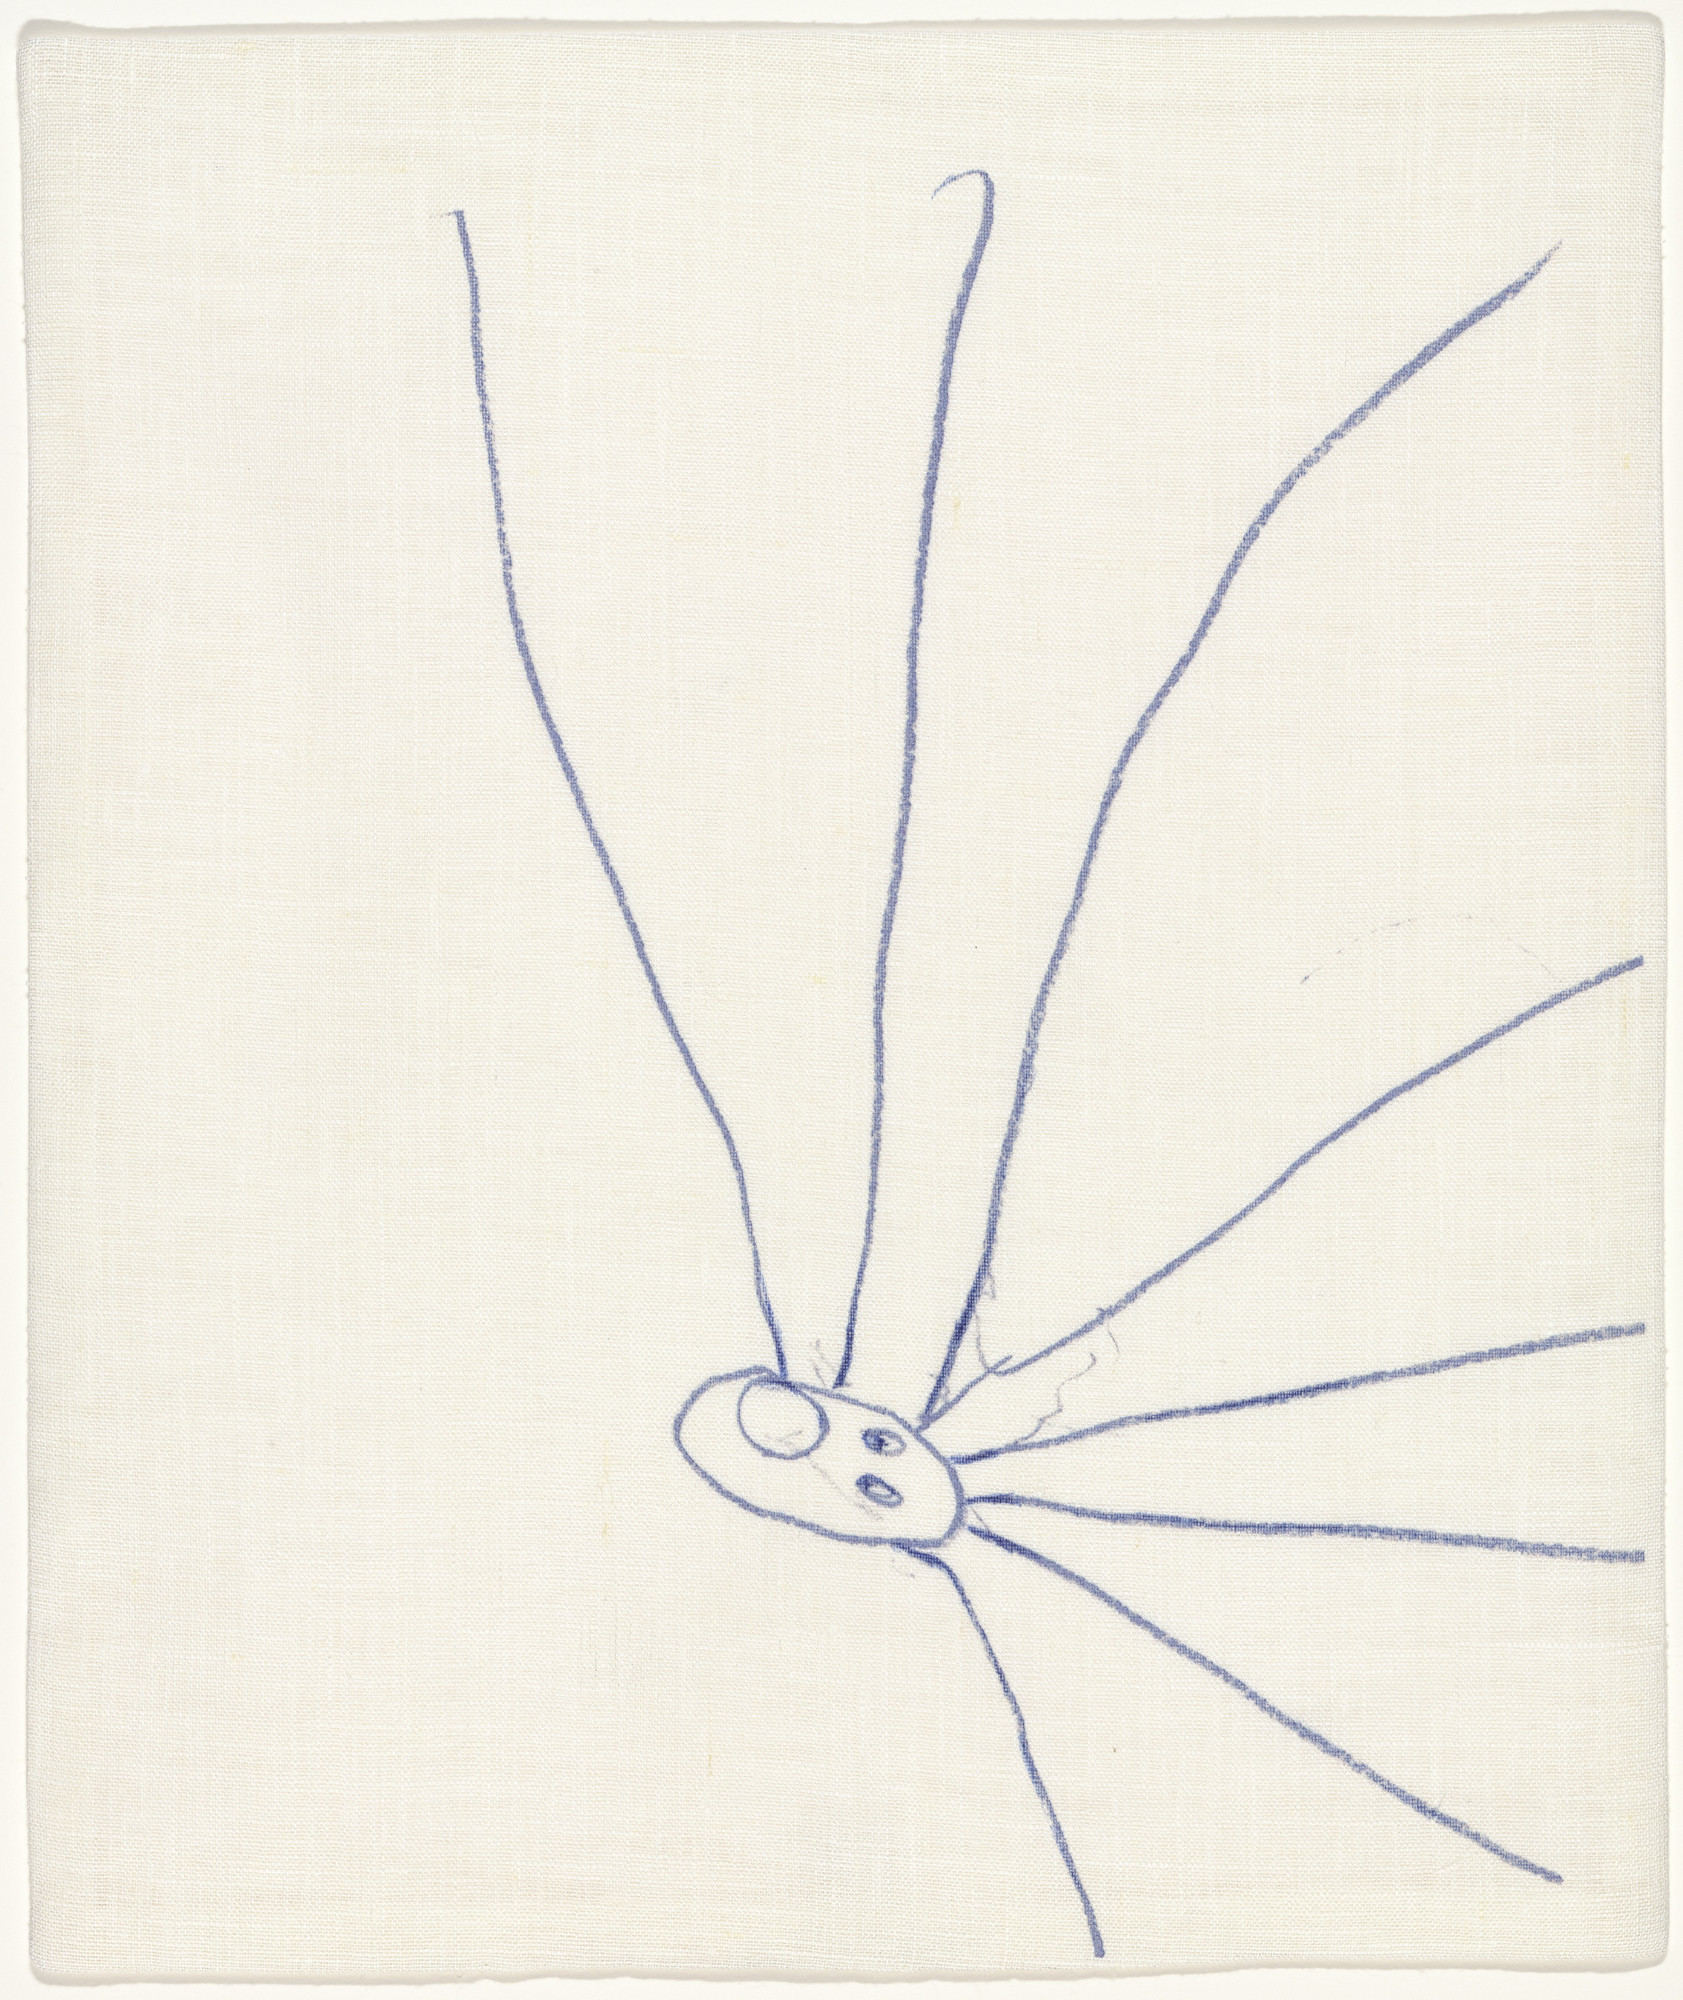 Louise Bourgeois. Untitled, no. 2 of 36, from the series, The Fragile. 2007